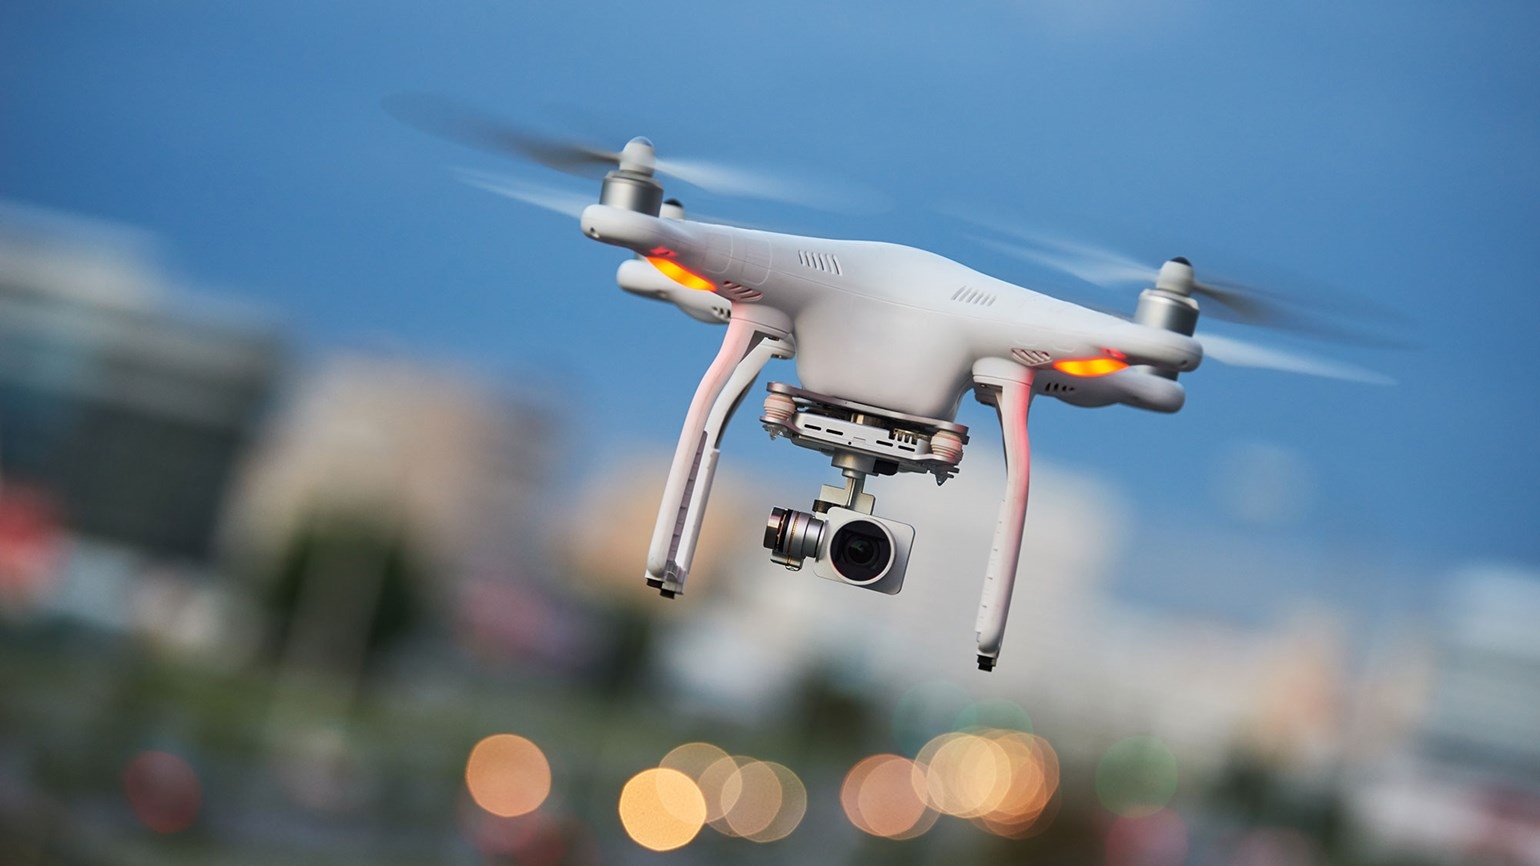 Drone sighting over N.J. raises concern for aviation